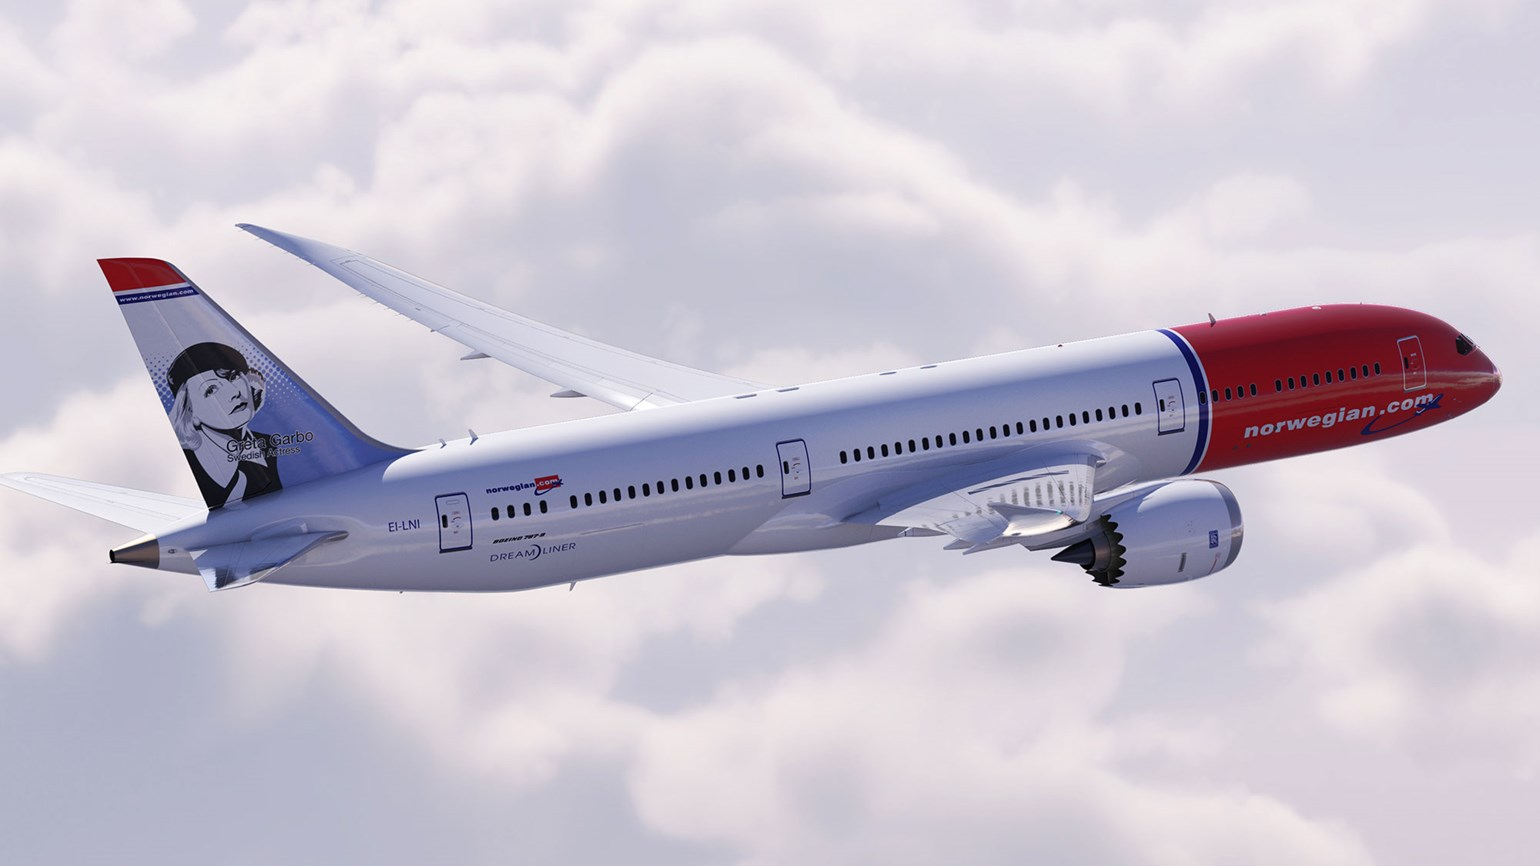 After nearly 3 years, DOT approves Norwegian Air permit